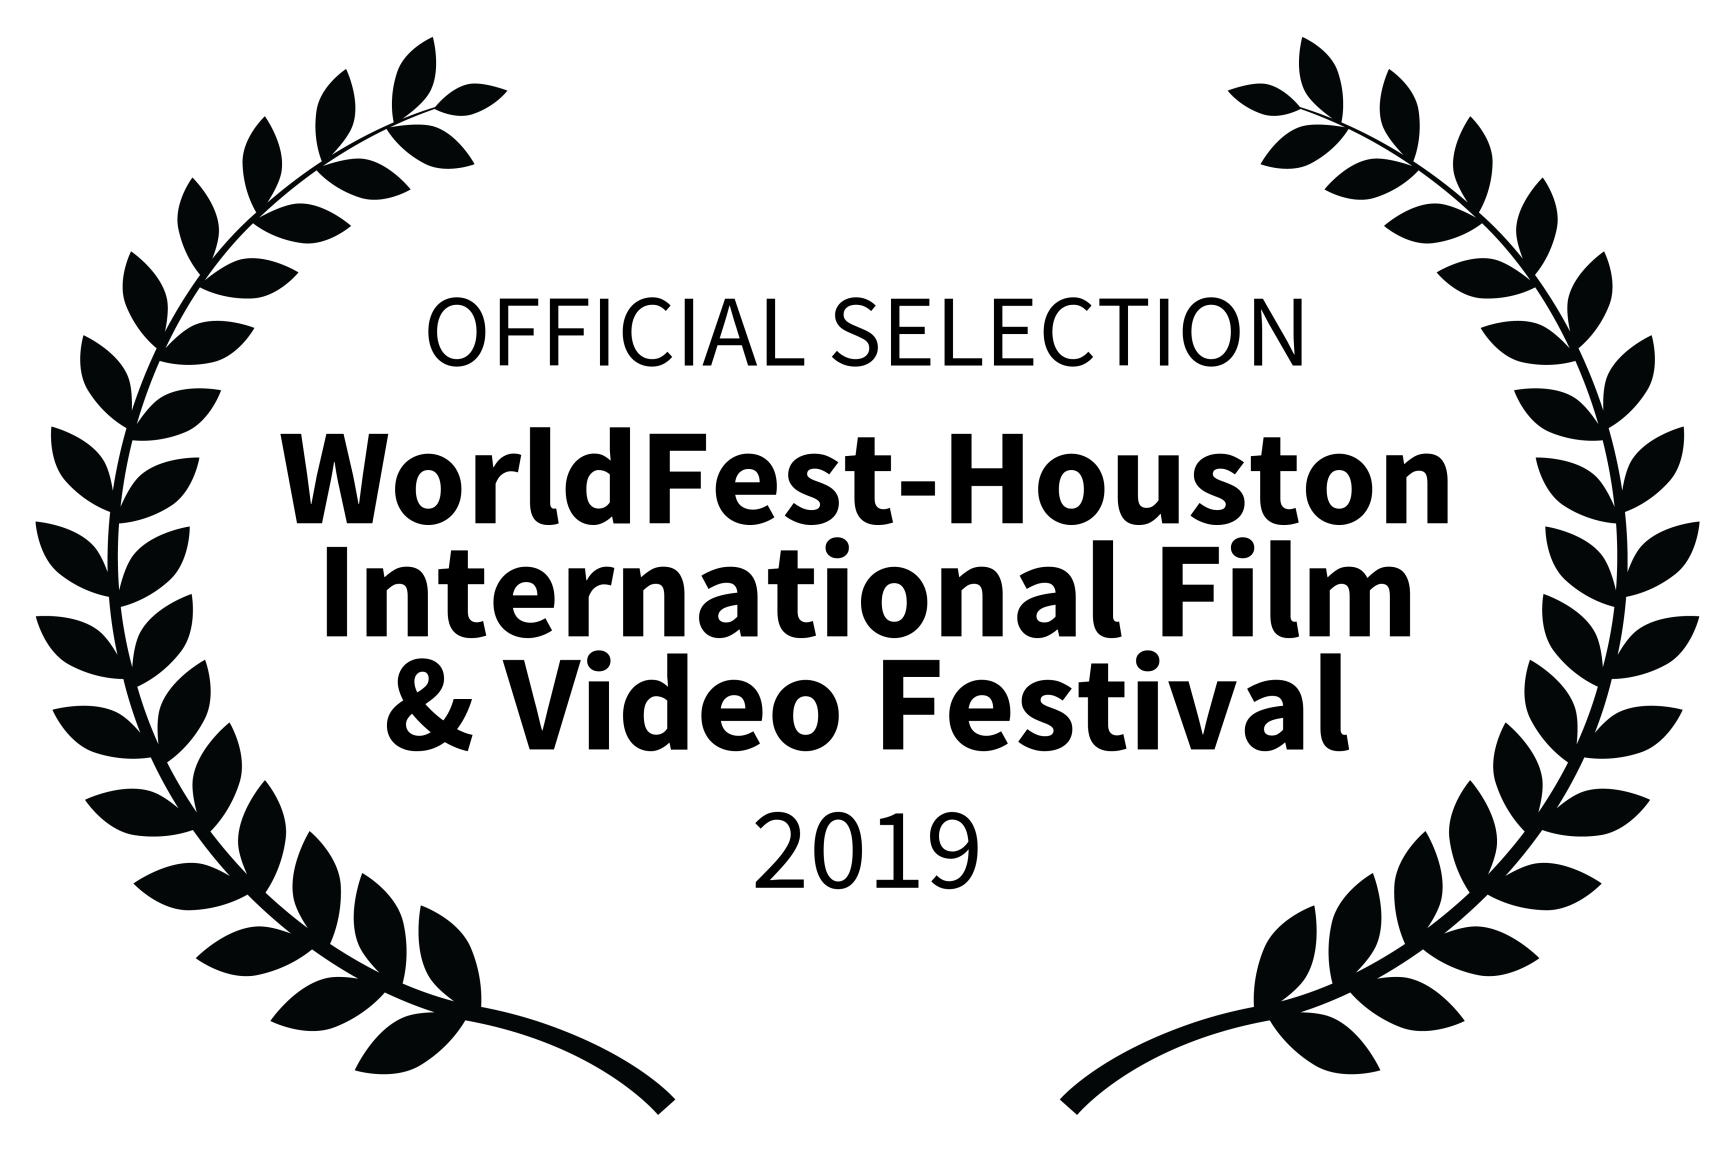 OFFICIAL SELECTION - WorldFest-Houston International Film Video Festival - 2019